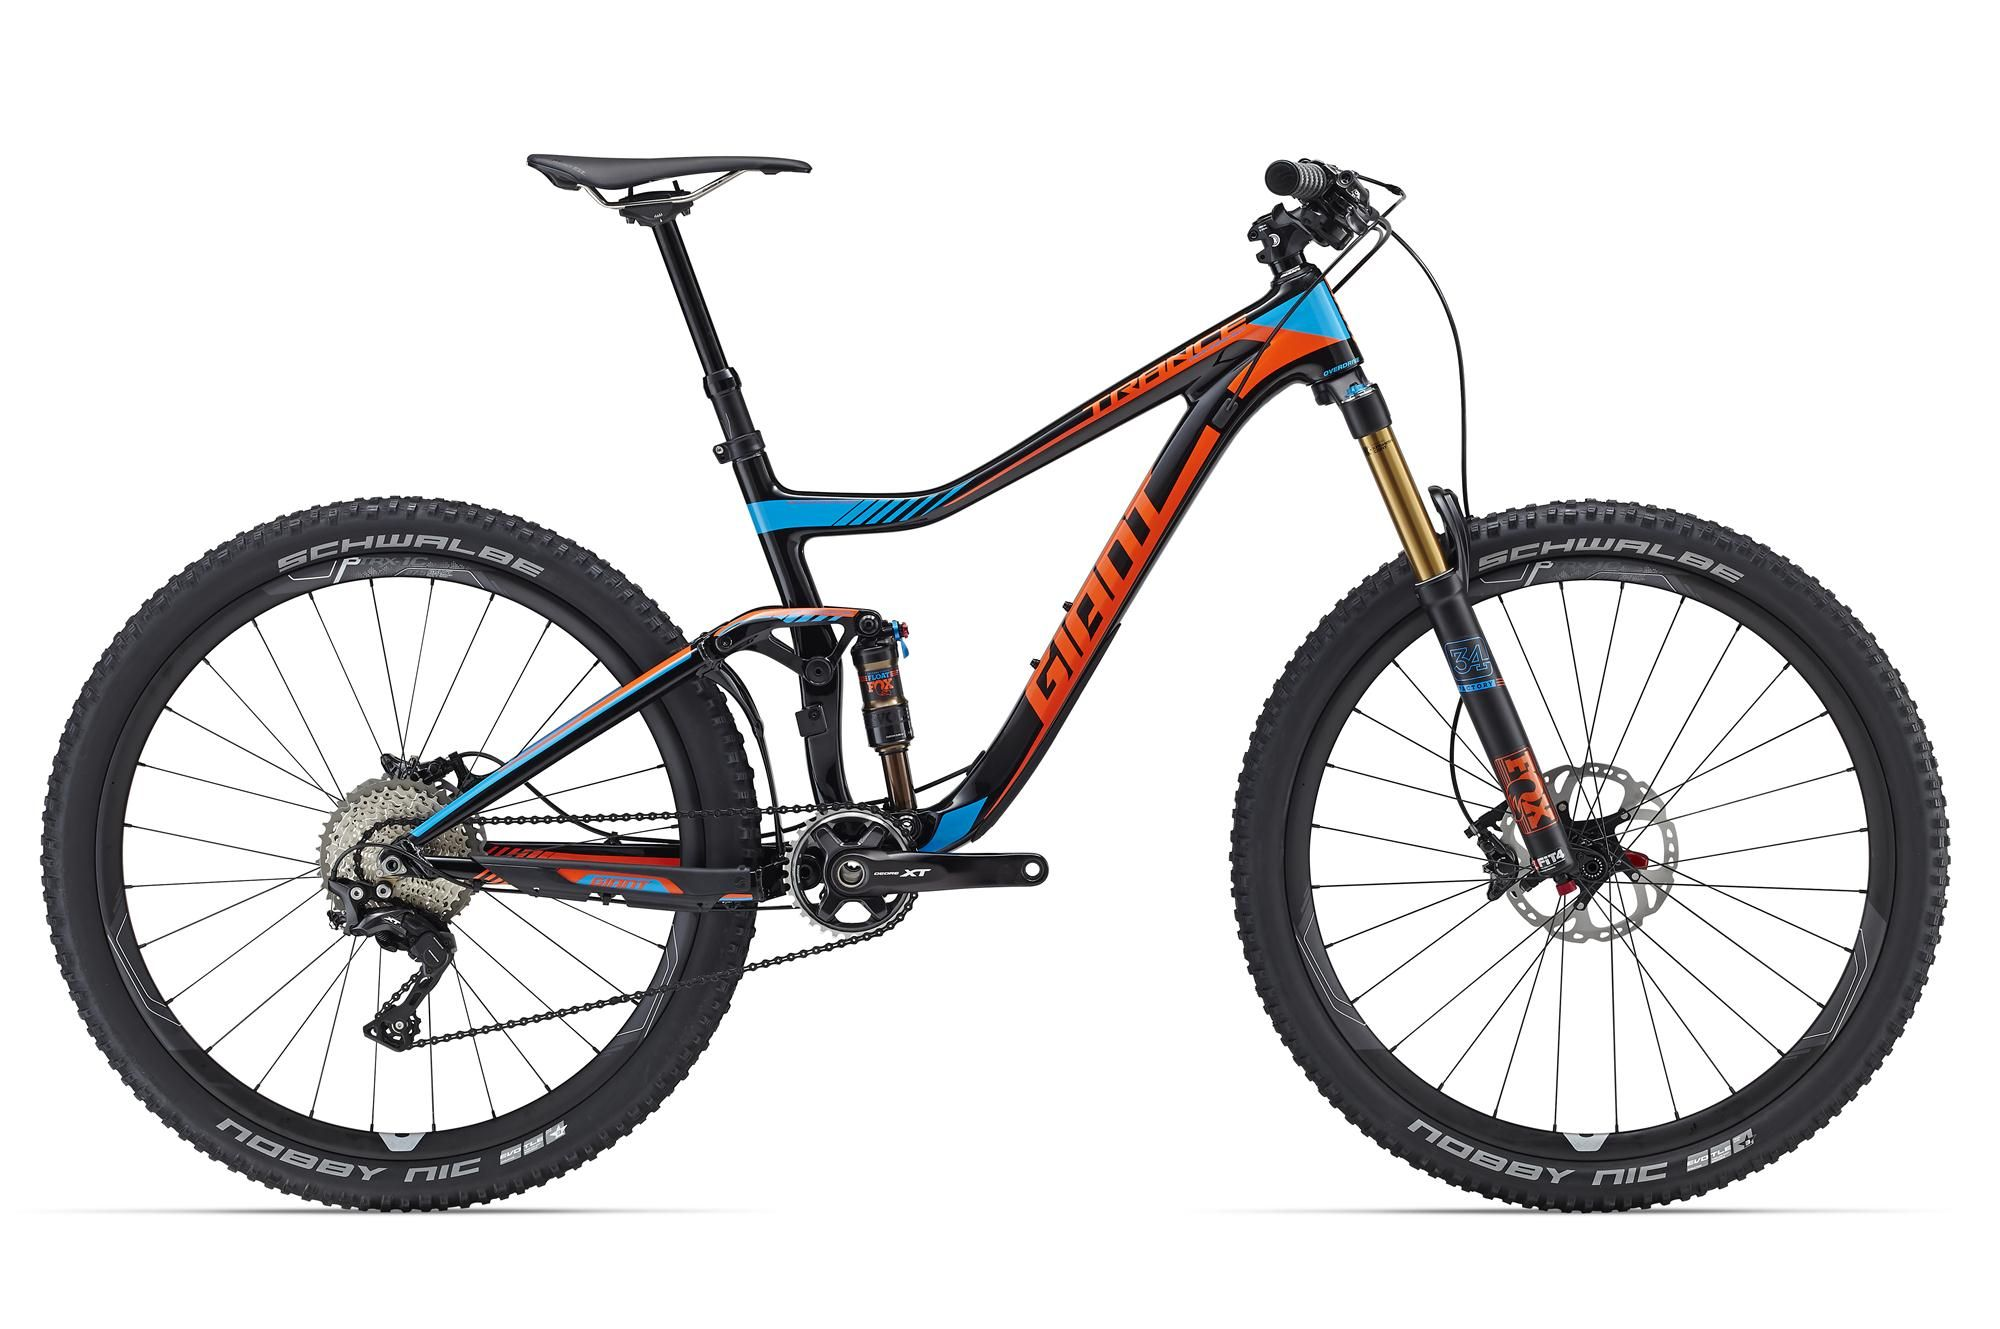 Велосипед Giant Trance Advanced 27.5 1 2016 велосипед giant trinity advanced pro 1 2016 page 8